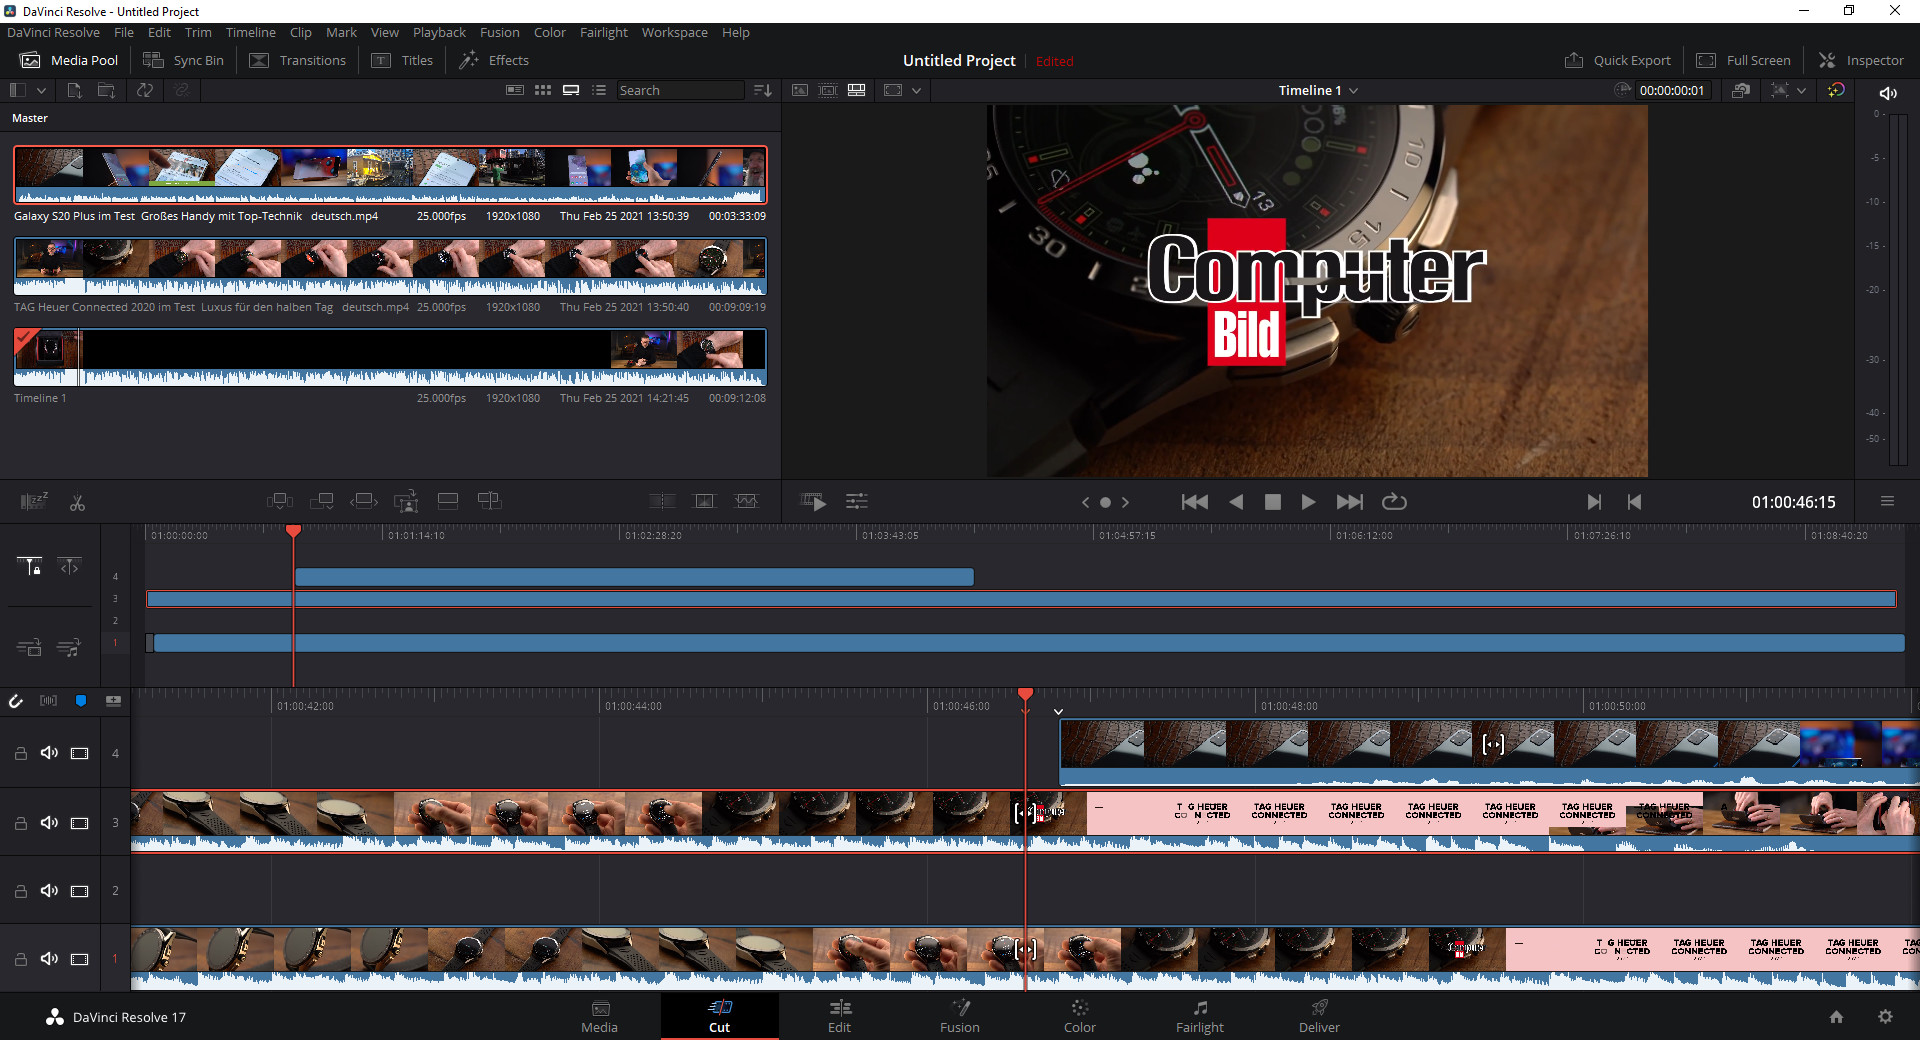 Screenshot 1 - DaVinci Resolve